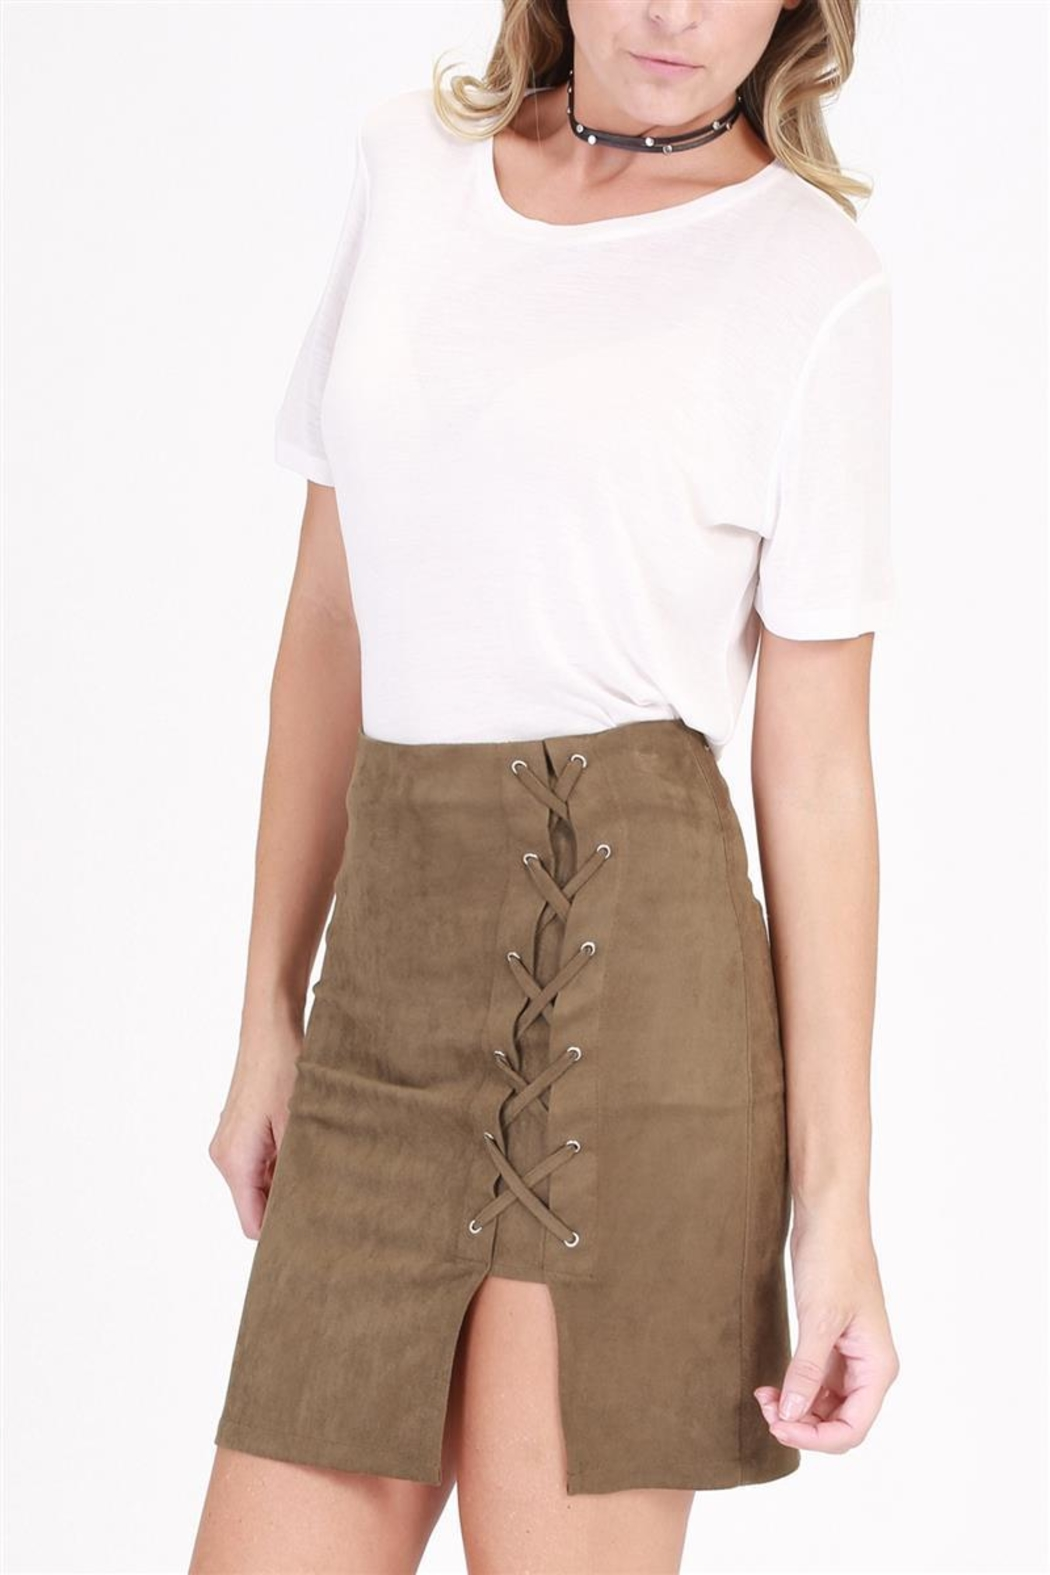 onetheland Tie Mini Skirt - Side Cropped Image